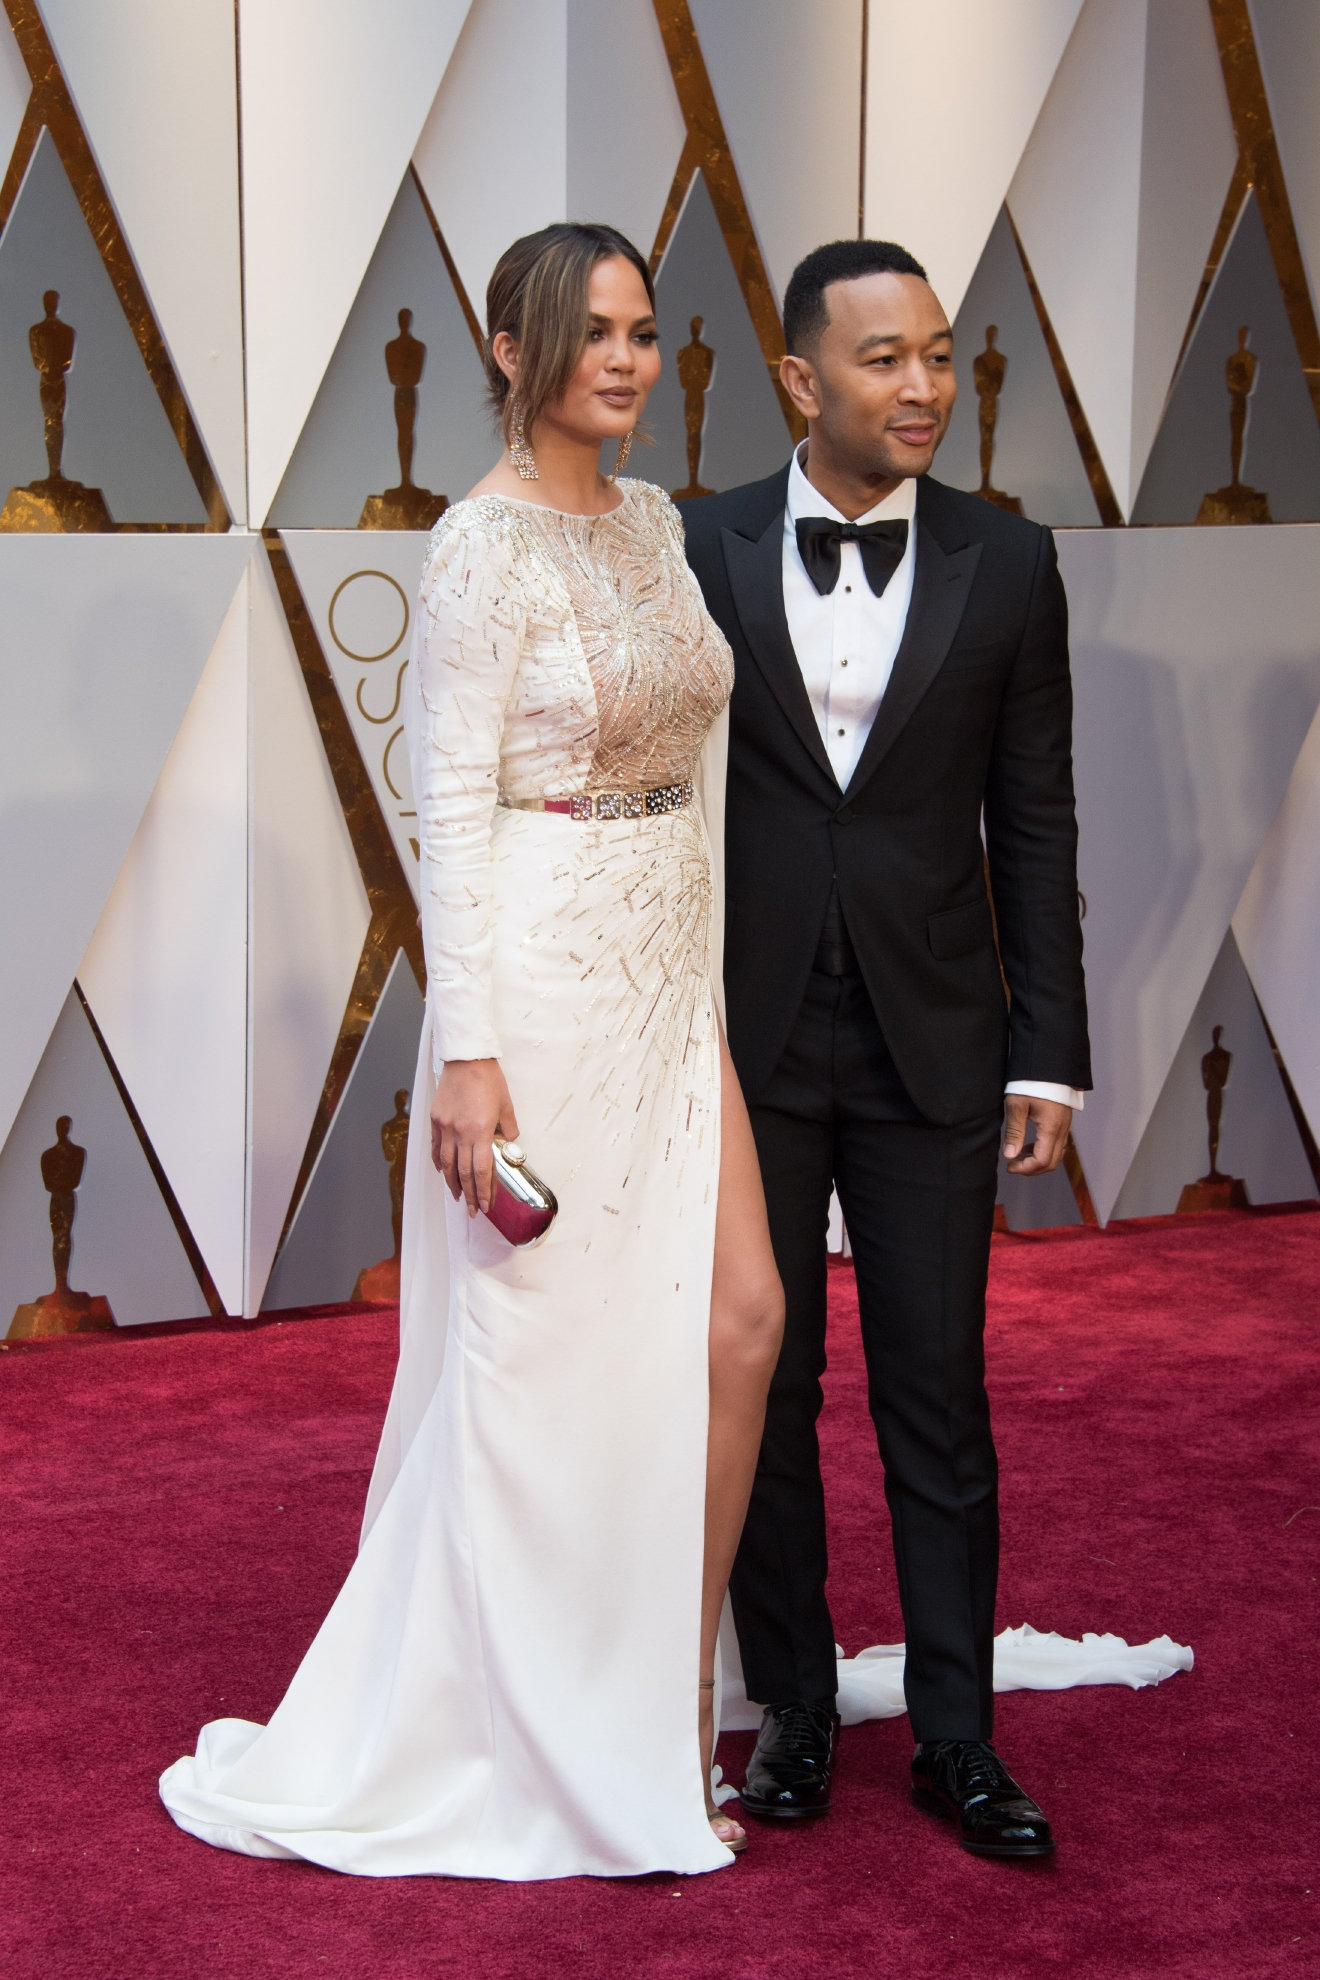 #34: Chrissy Teigen. We LOVE this couple, but this is not Chrissy or John's best Red Carpet moment. (Image: AMPAS)